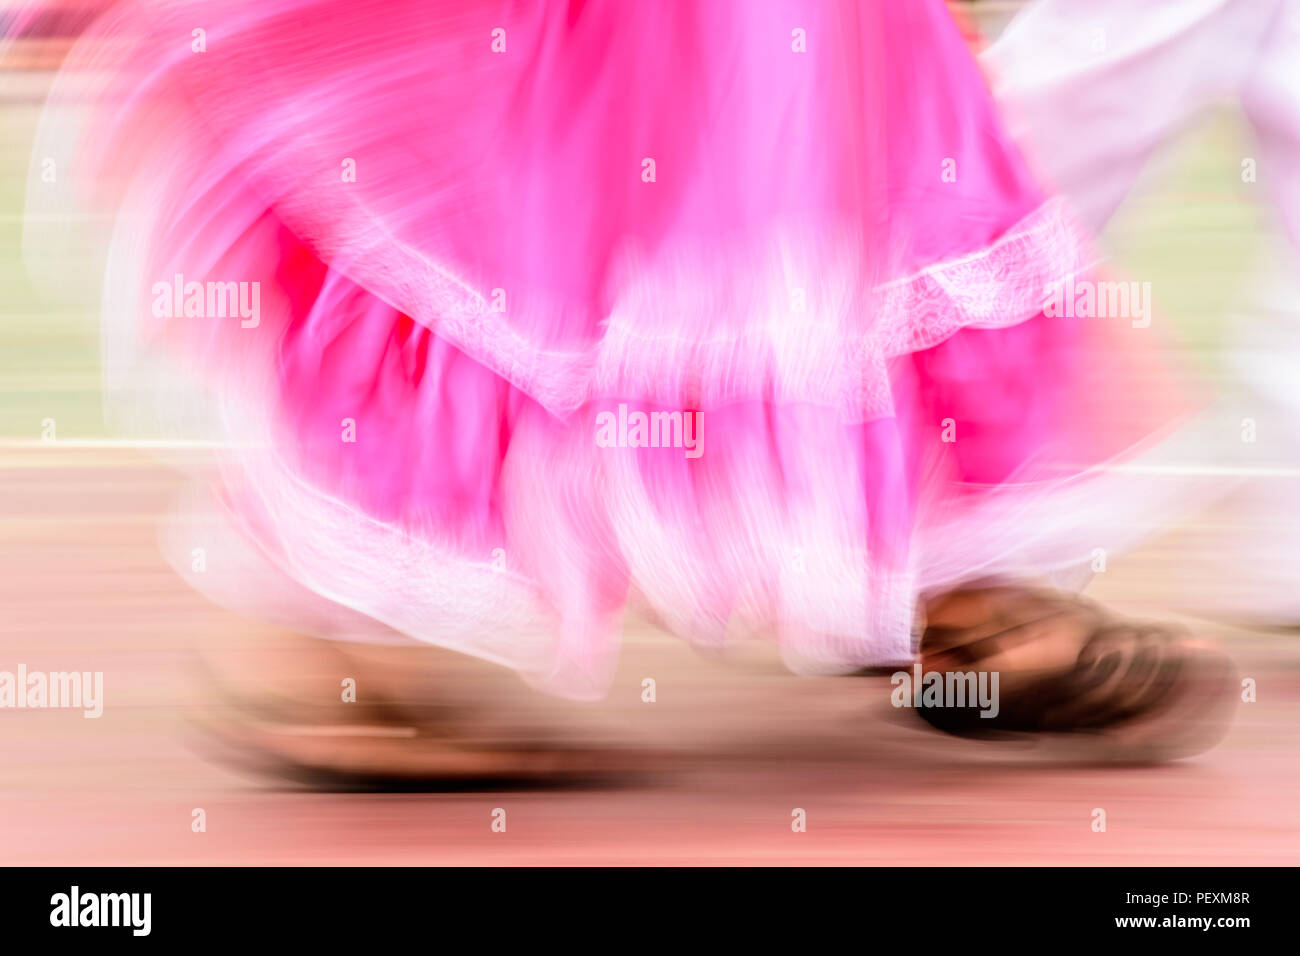 Art Feet Fine Stock Photos & Art Feet Fine Stock Images - Alamy